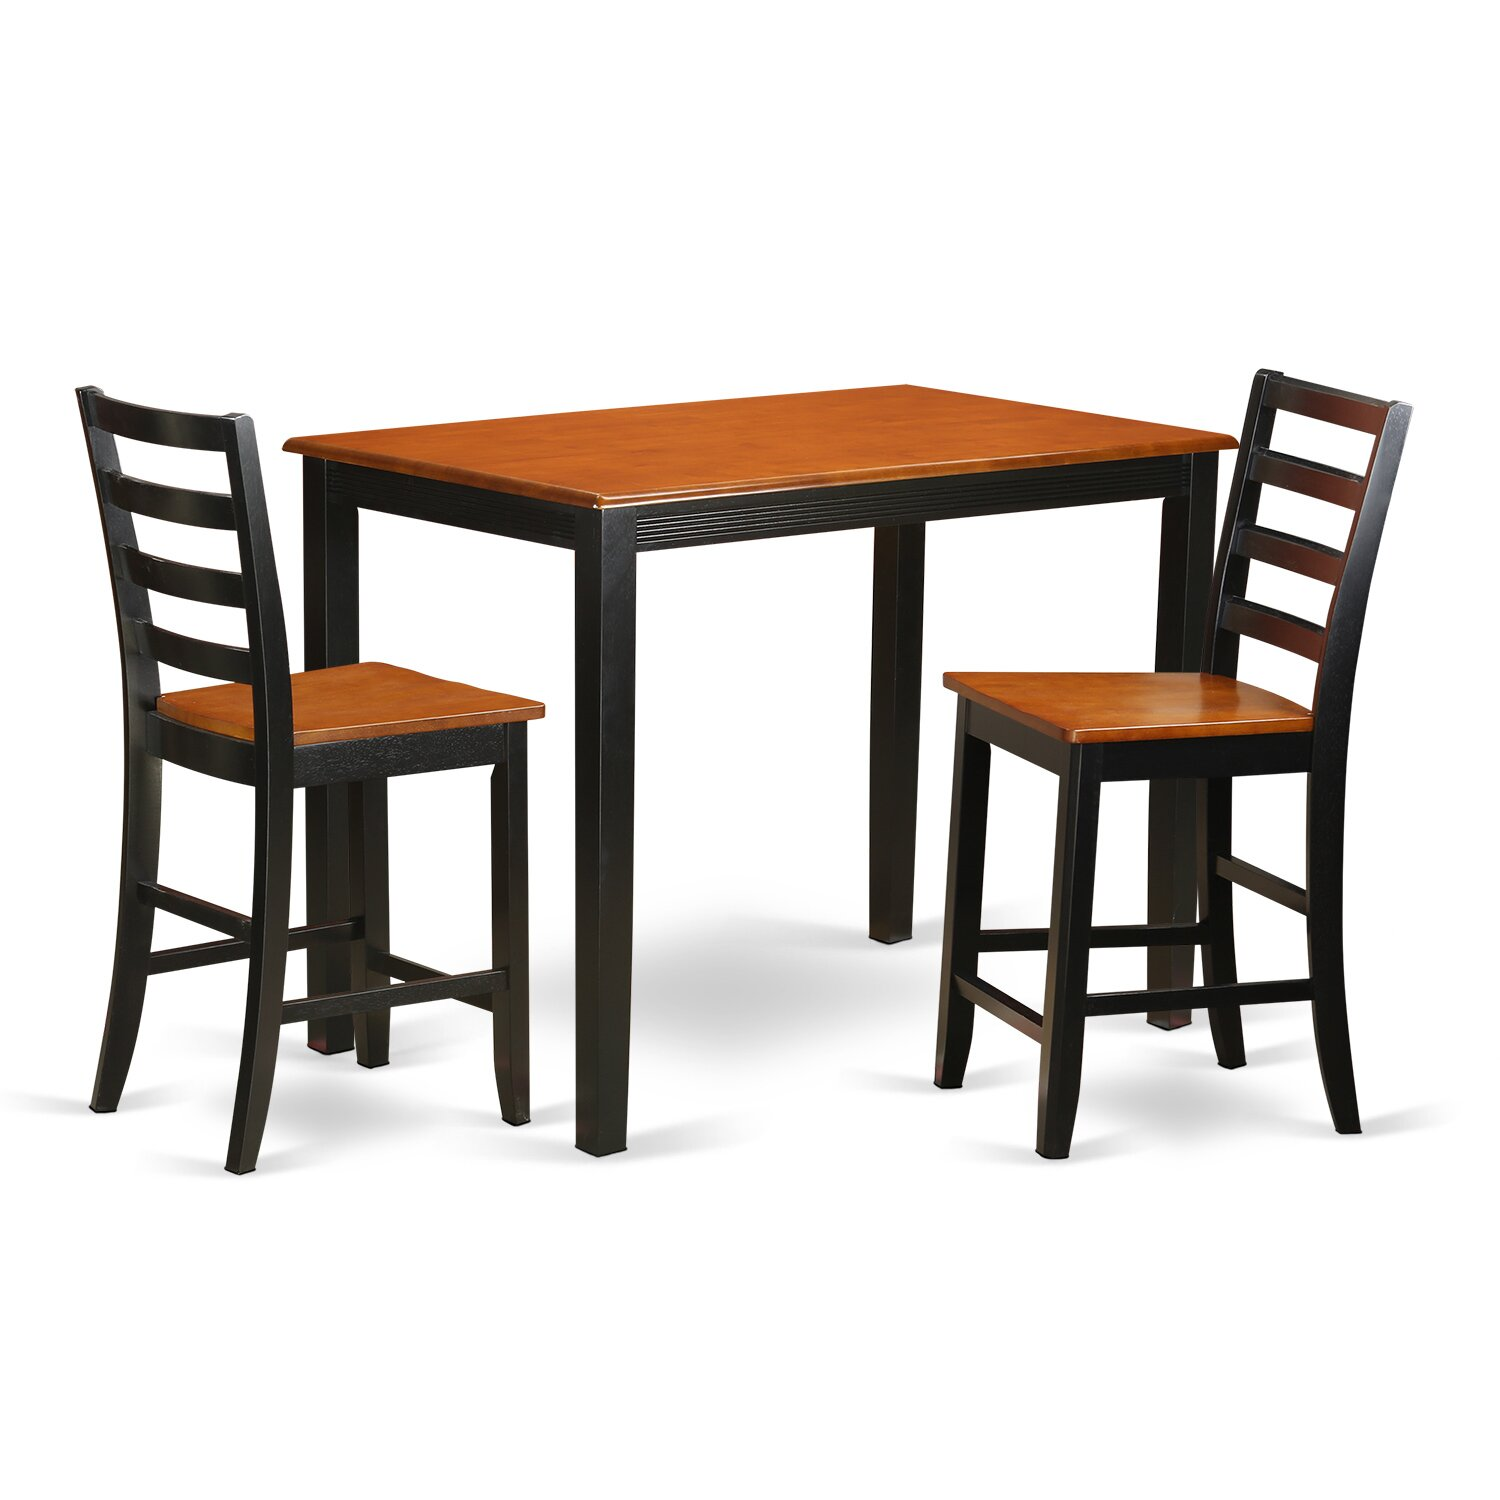 Wooden importers yarmouth 3 piece counter height pub table for Kitchen counter set